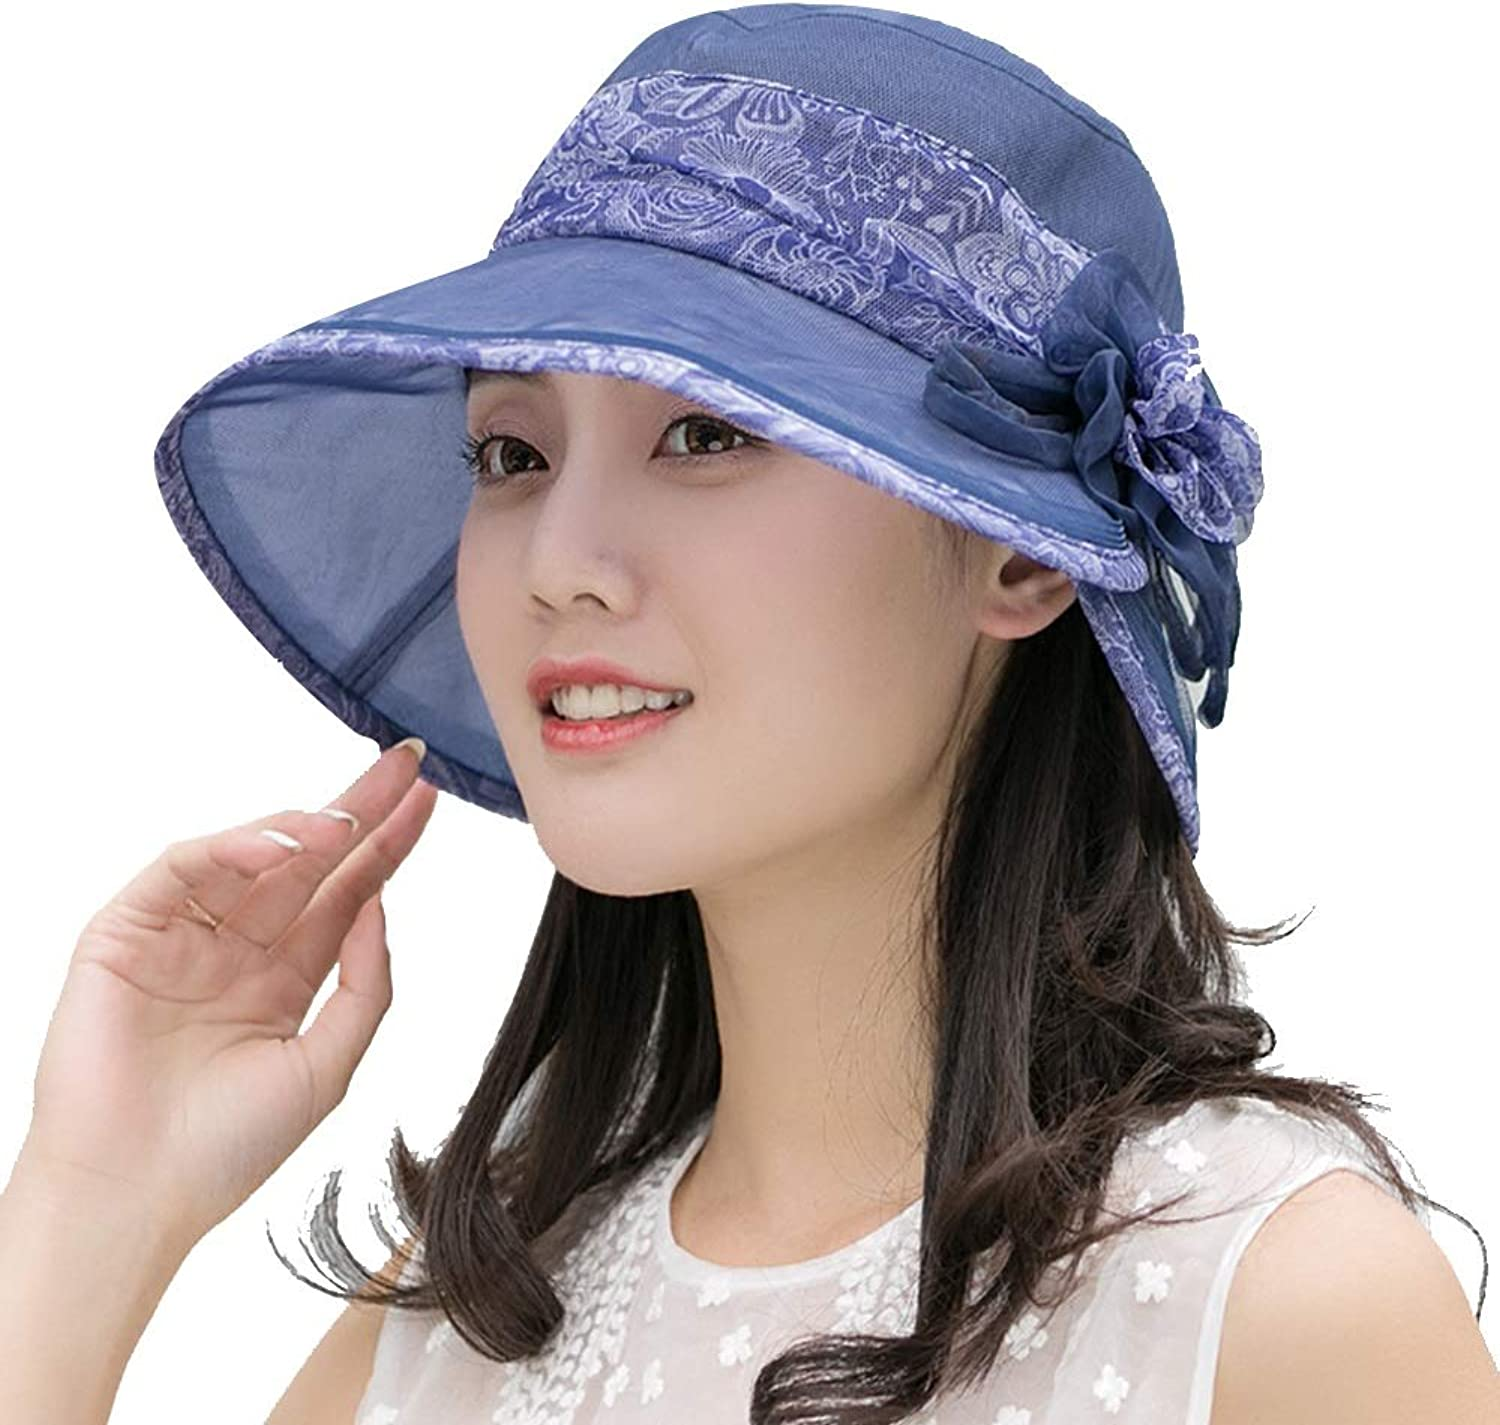 Jia Jia Sun hat  Summer Women's Lightweight Breathable Holiday Sunscreen Folding Fashion Wild Visor hat Big Brim of hat Beach hat Silk Silk hat Summer Outdoor Sun hat (color   Navy bluee)